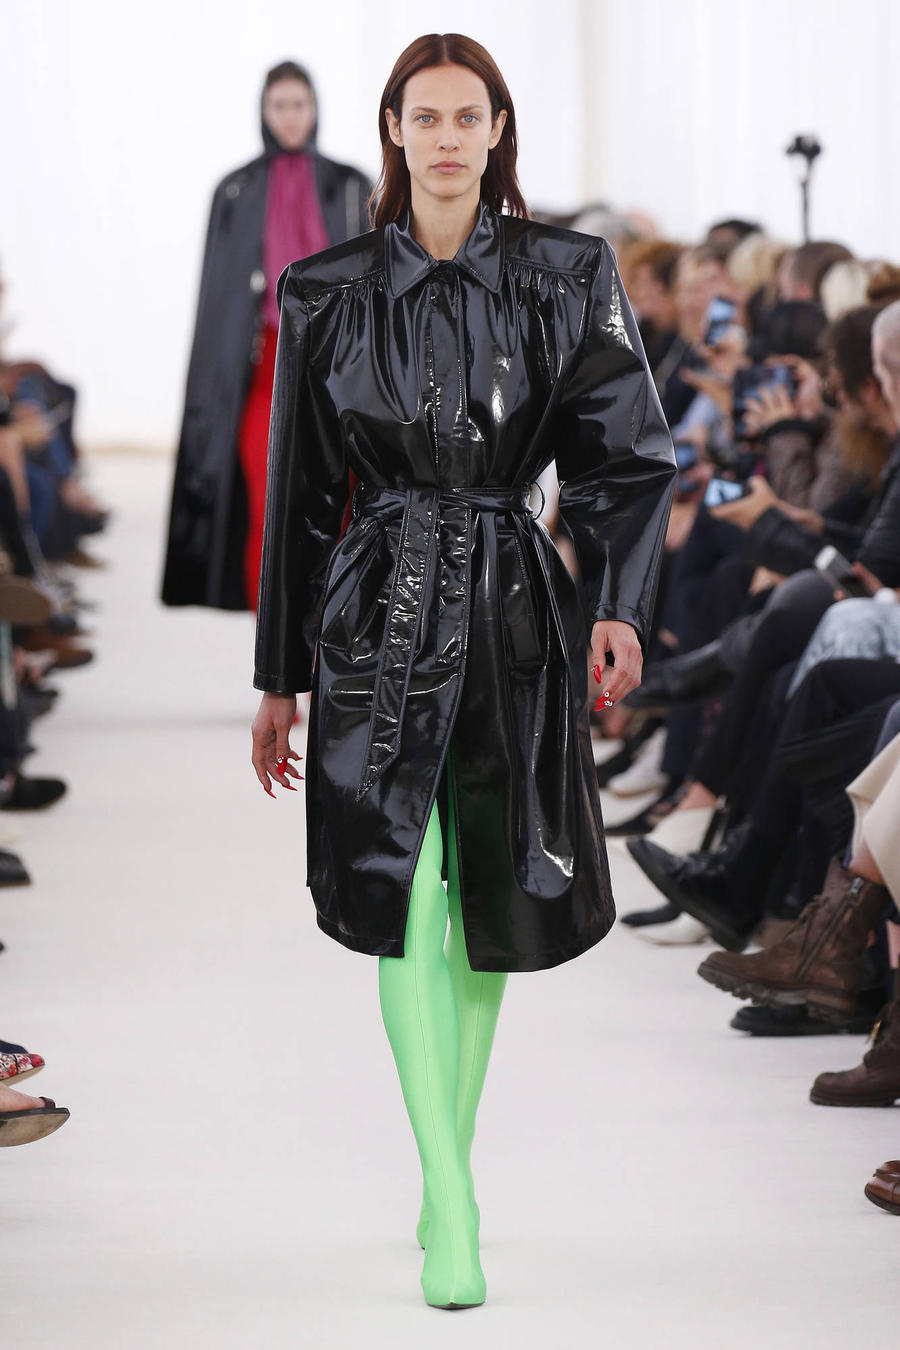 Balenciaga Casting Directors Fight Back Against Allegations Of Mistreating Models